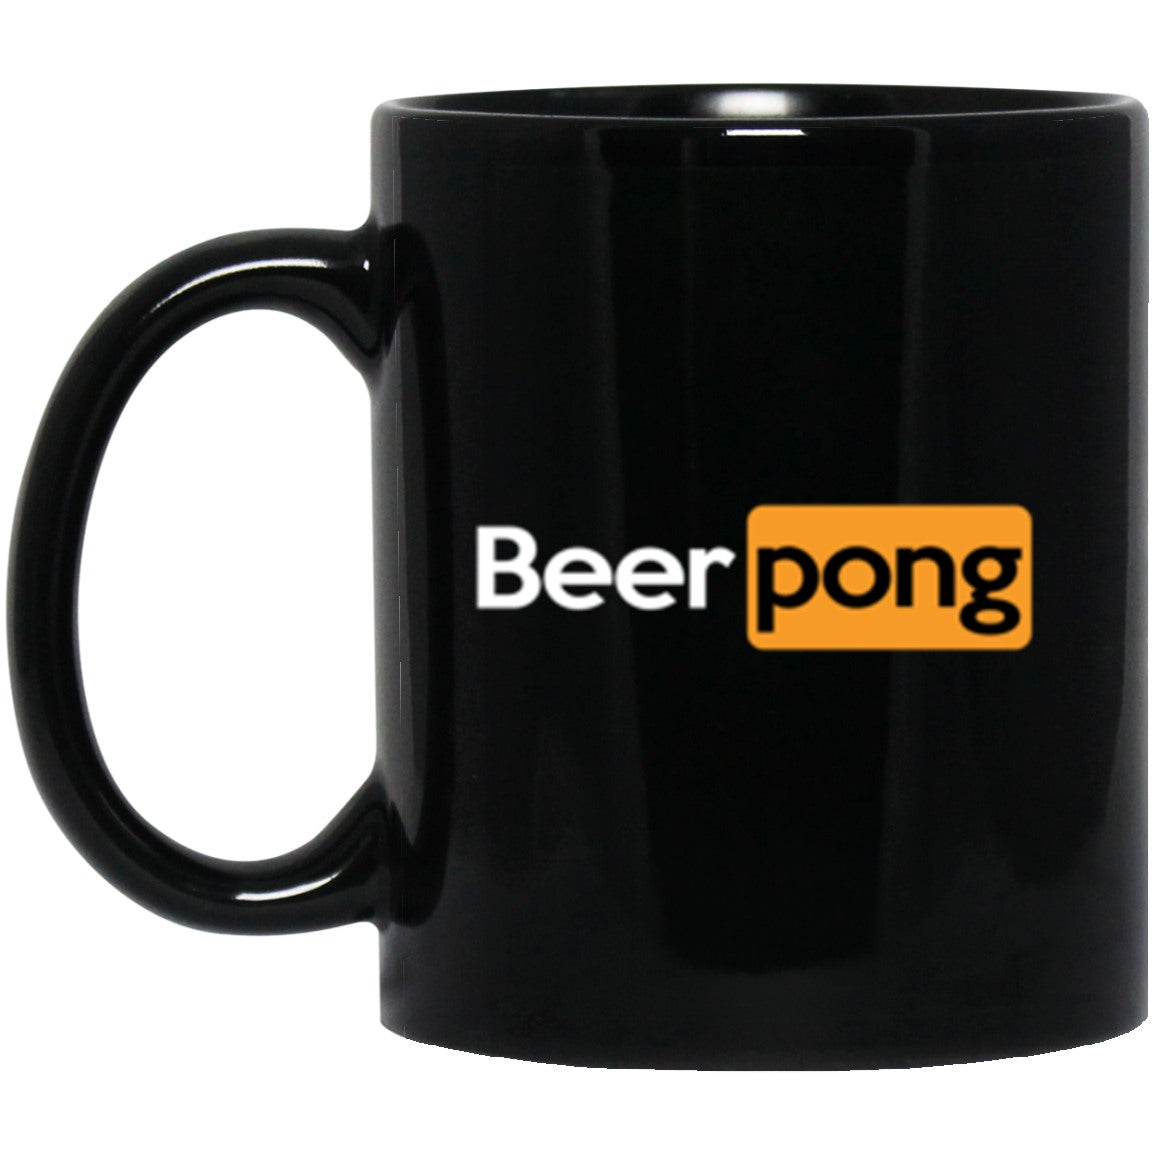 Drinkware - Beer Pong Mug 11oz (2-sided)